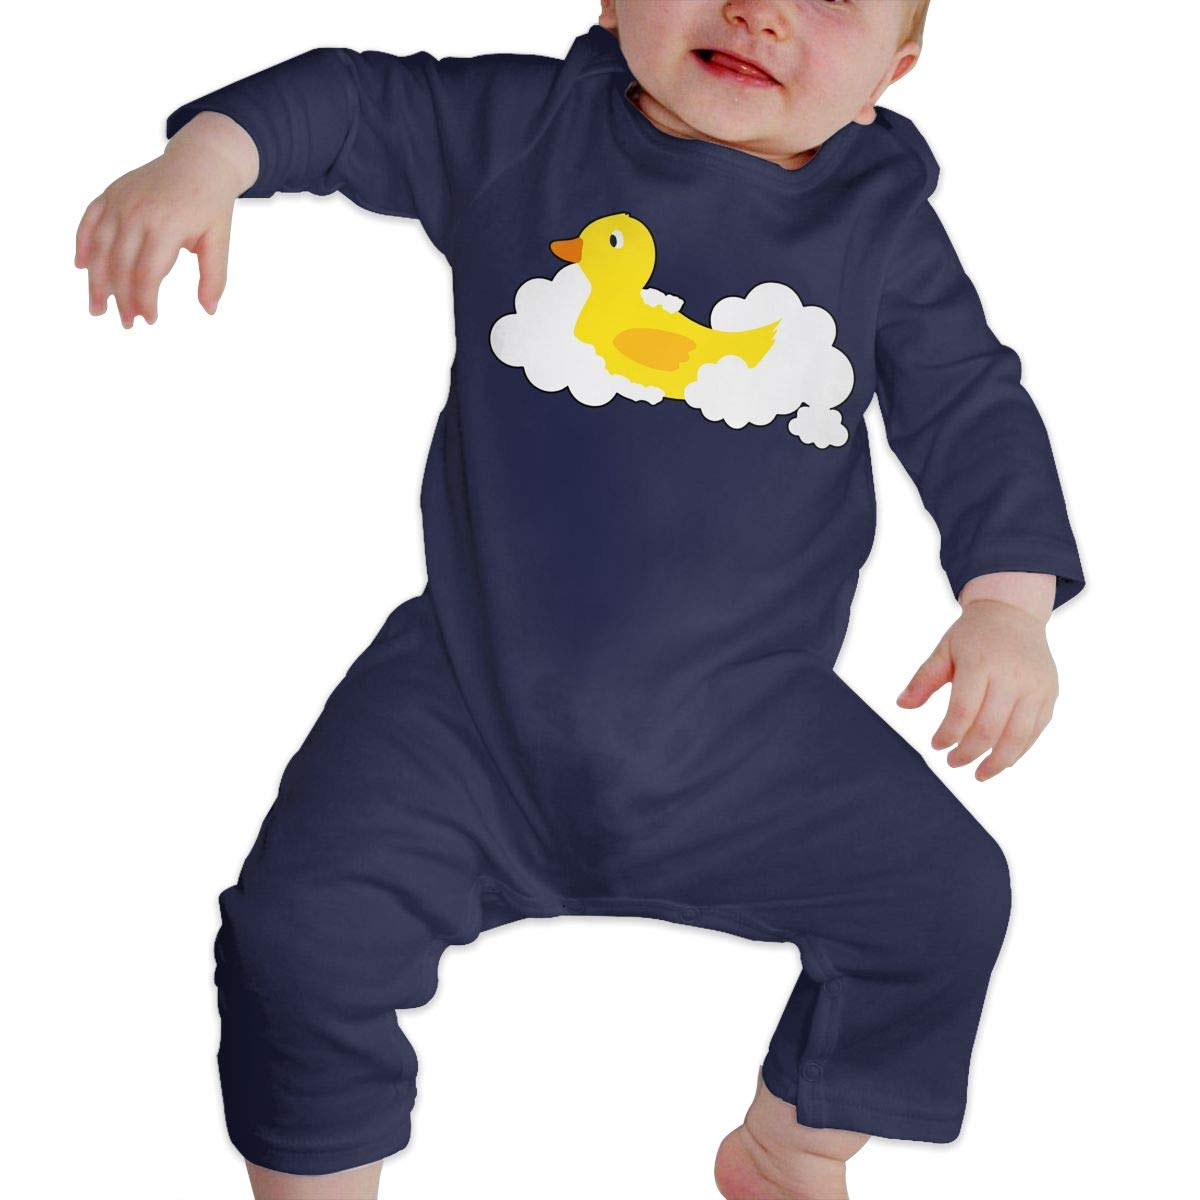 Rubber Duck Toddler Baby Girls Sleep and Play Bodysuit Jumpsuit Outfits